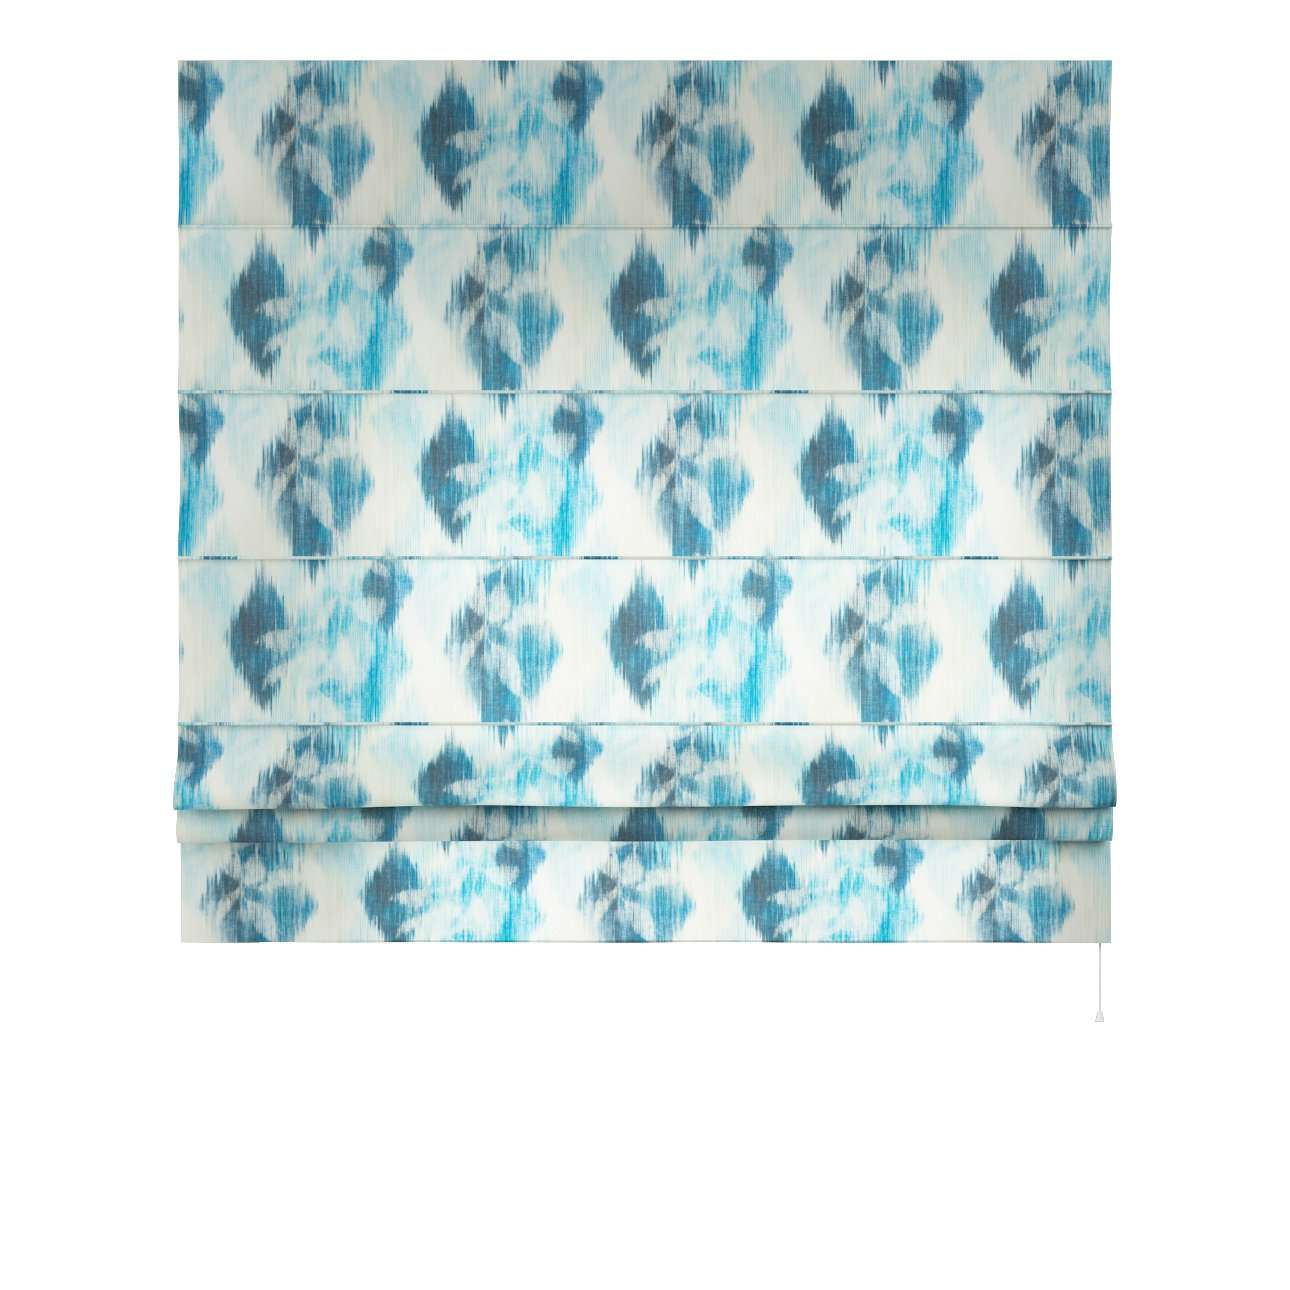 Padva roman blind  80 × 170 cm (31.5 × 67 inch) in collection Aquarelle, fabric: 140-71